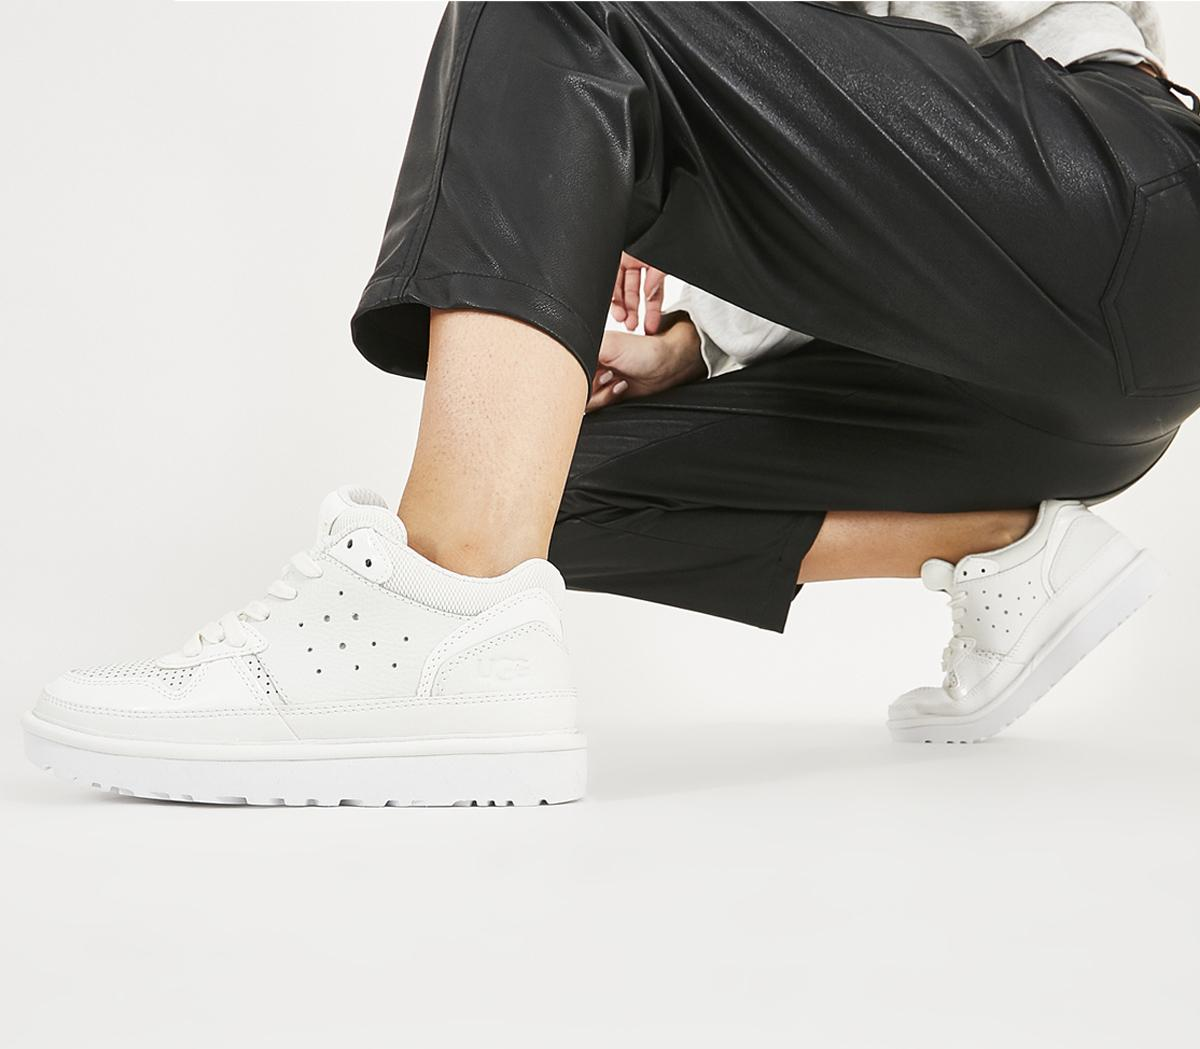 UGG Highland Sneakers White - Flats